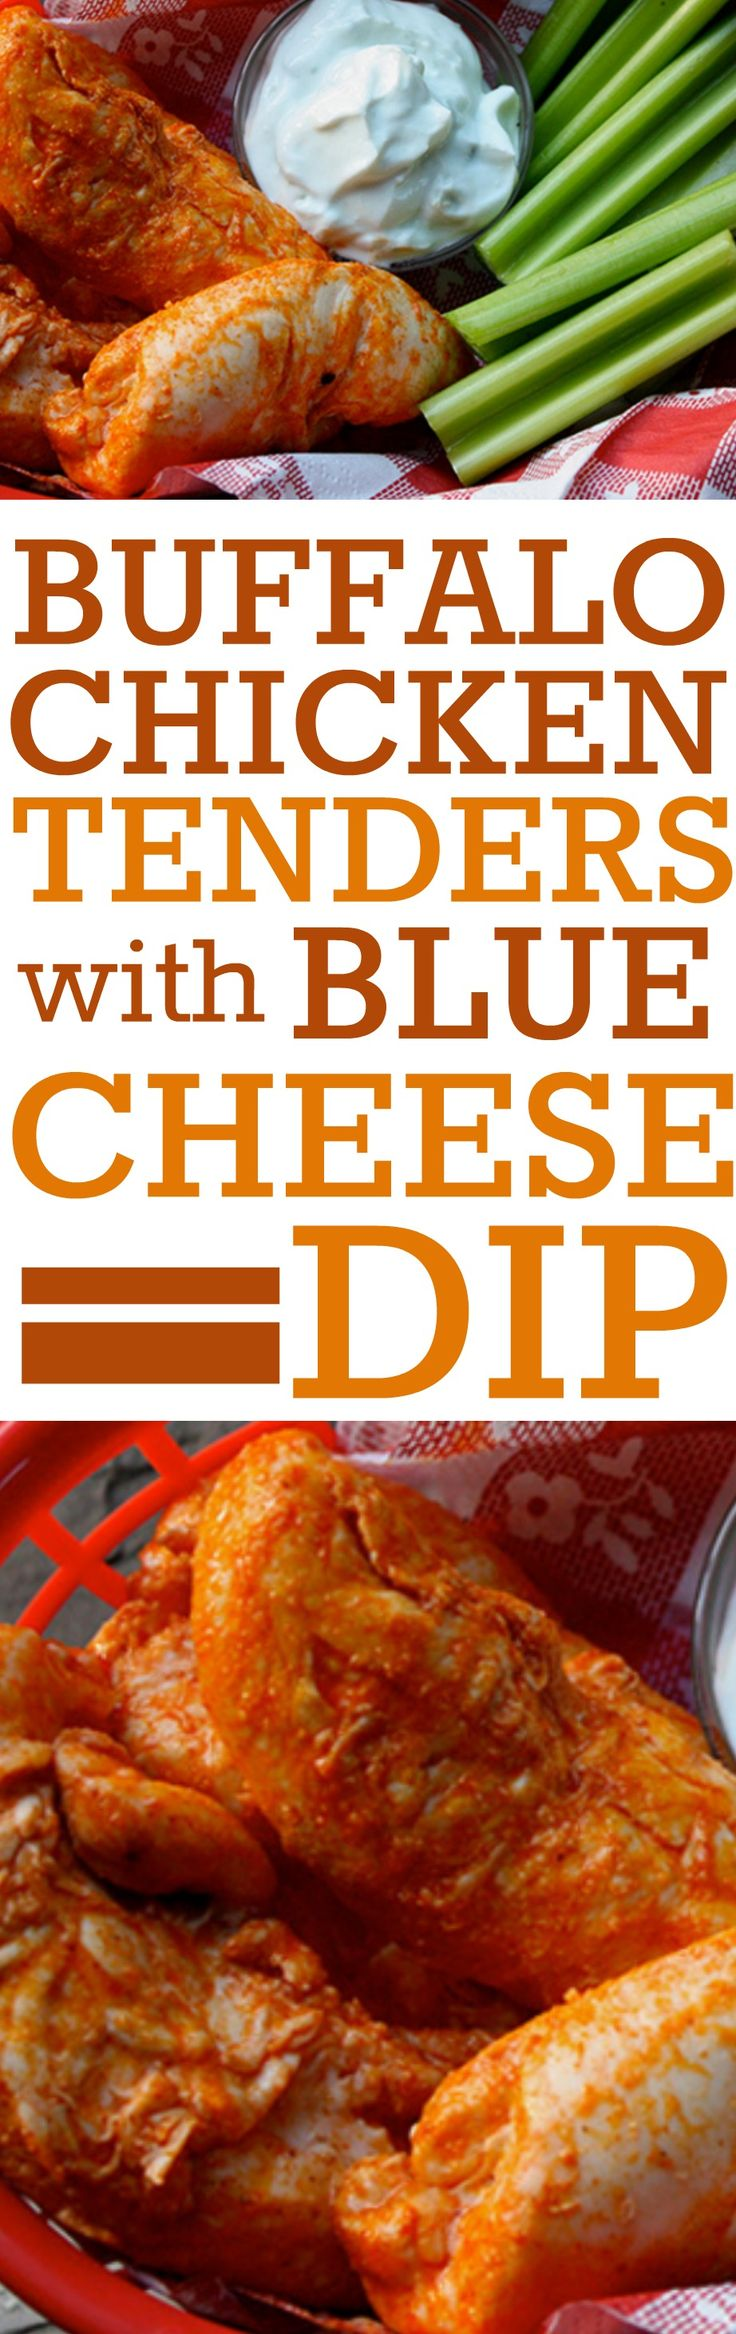 Buffalo Chicken Tenders with Blue Cheese Dip #chickentenders #healthychickentenders #buffalochickentenders #healthybuffalochicken #healthybuffalochickentenders #healthychickentenders #chickentenders #cleaneatingchickentenders #cleaneatingchickenrecipes #healthychickenrecipes